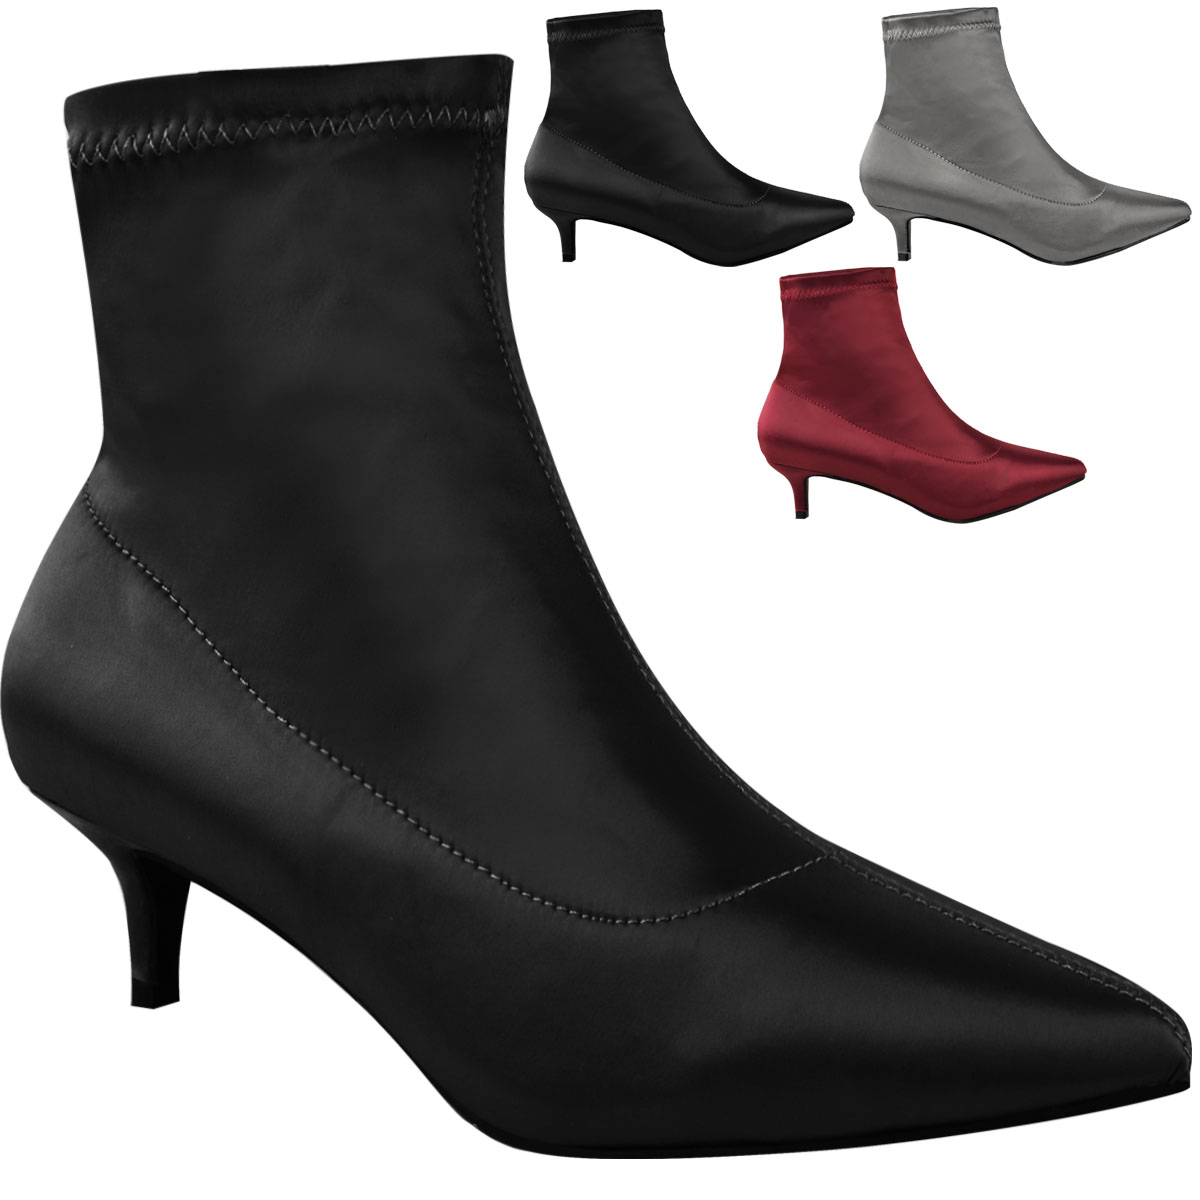 Brilliant 16cm Ultra High Heel Ankle Boots Black Patent Leather Boots Platform Shoes Women Size 35 To 40 ...